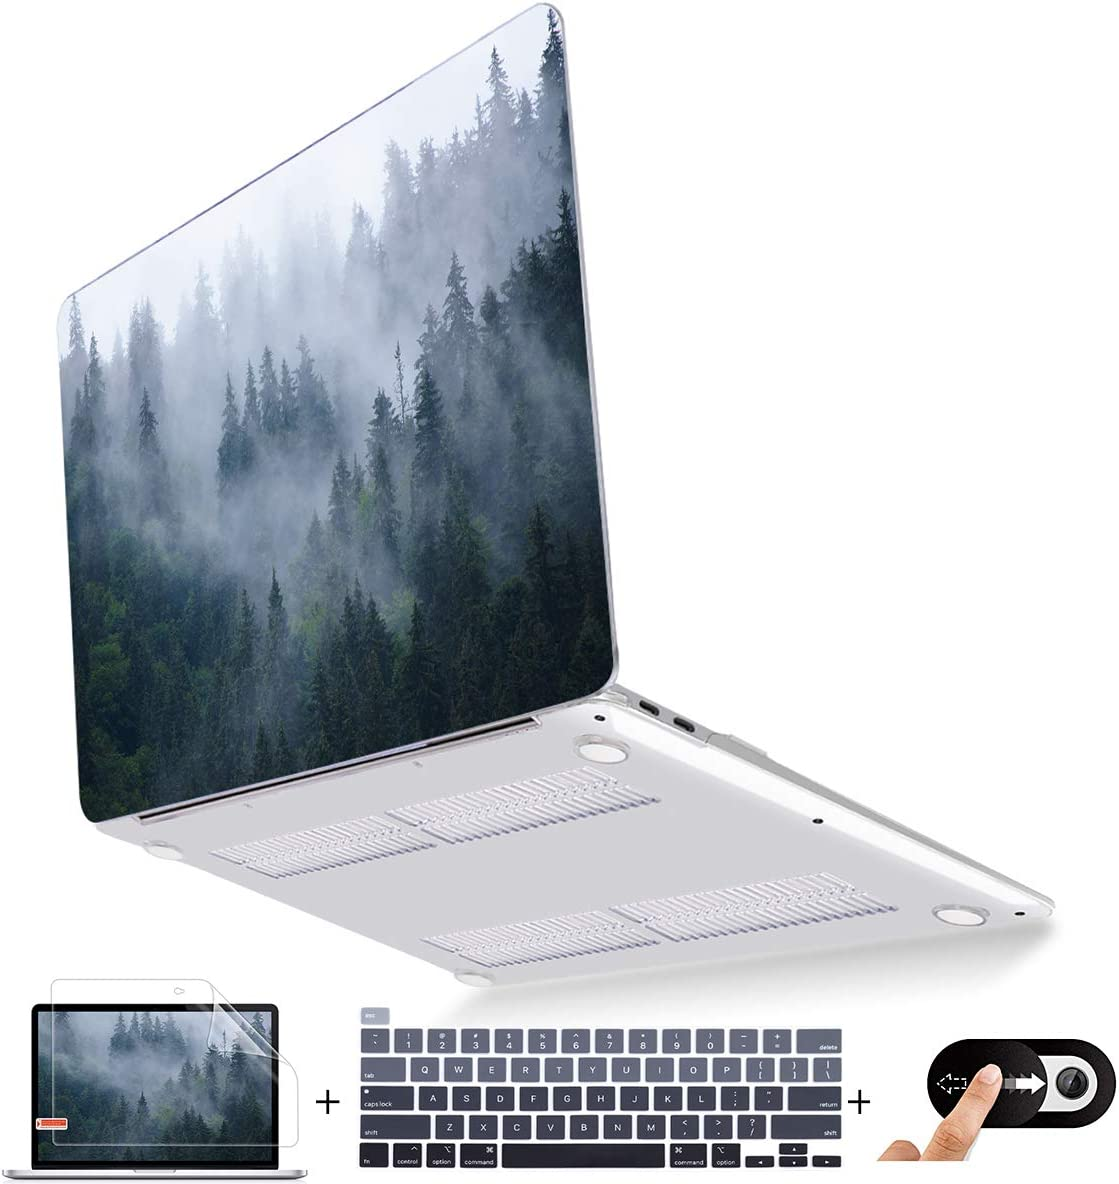 Mektron MacBook Pro 13 Cover A2289 A2251 2020 Release, Ultra Slim Laptop Hard Case Sheel w/Keyboard Cover Screen Protector Webcam Cover for 2020 Pro 13 inch Case, Fir Forest